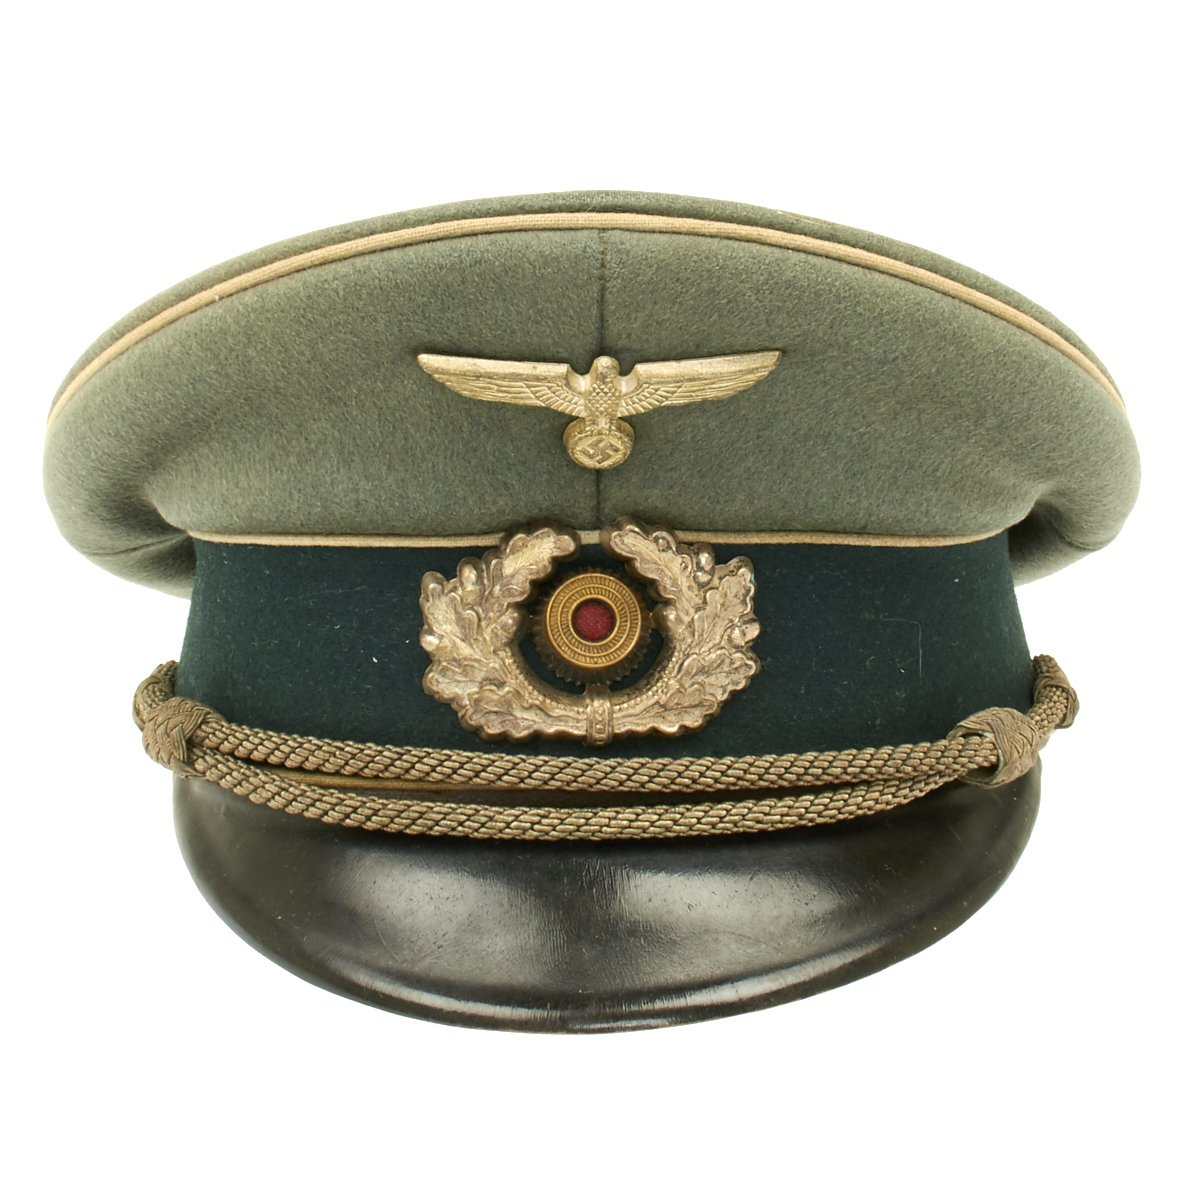 1df2531953c Prev · Original German WWII Army Heer Officer Visor Cap - Maker Marked. Tap  to expand